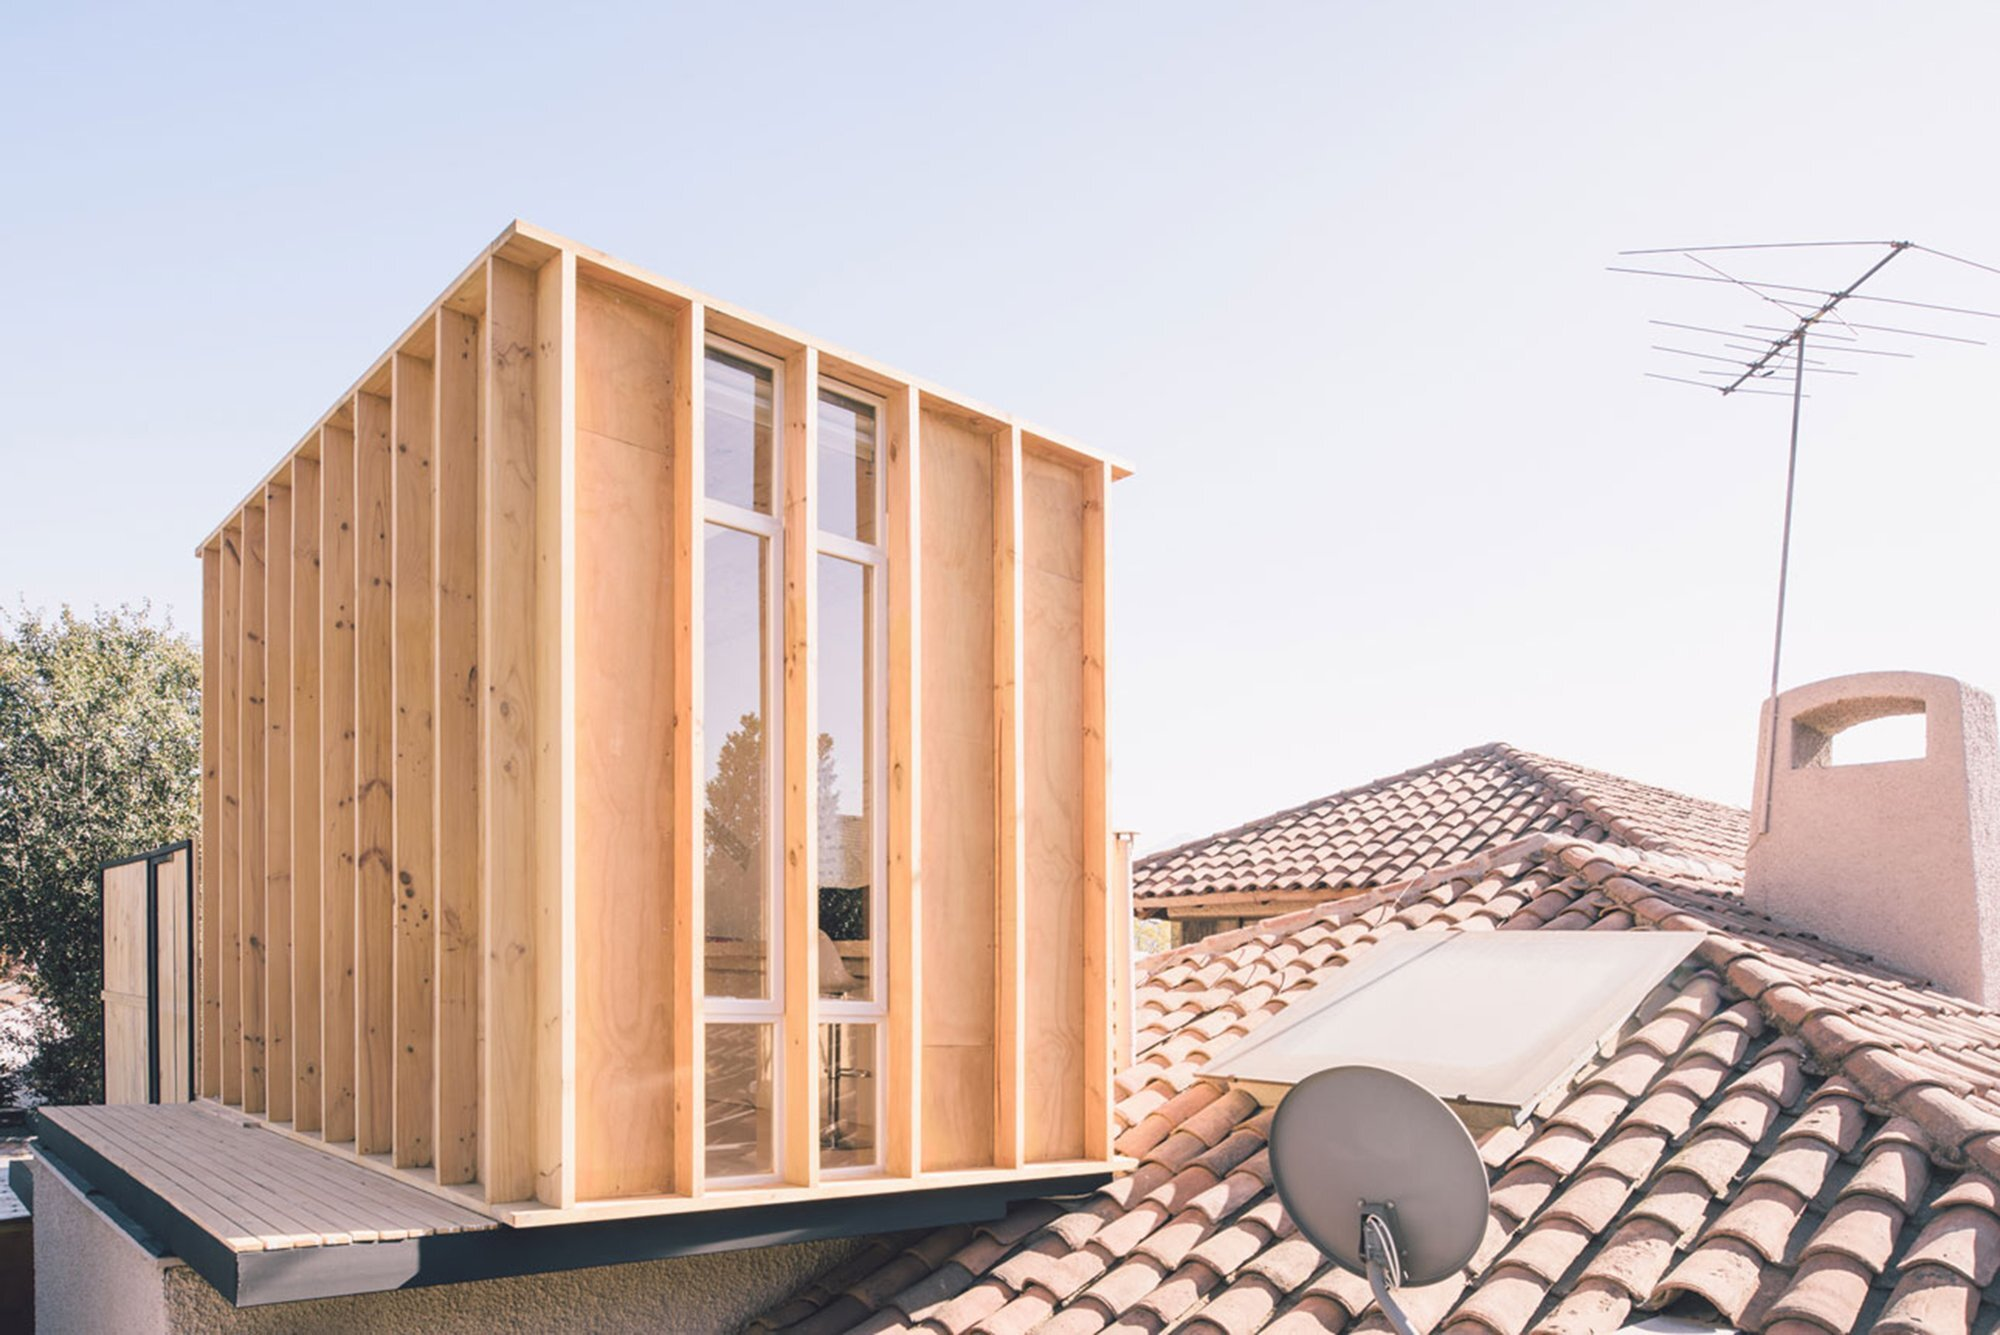 Workshop in the City - Romero Silva Arquitectos - Chile - Exterior - Humble Homes